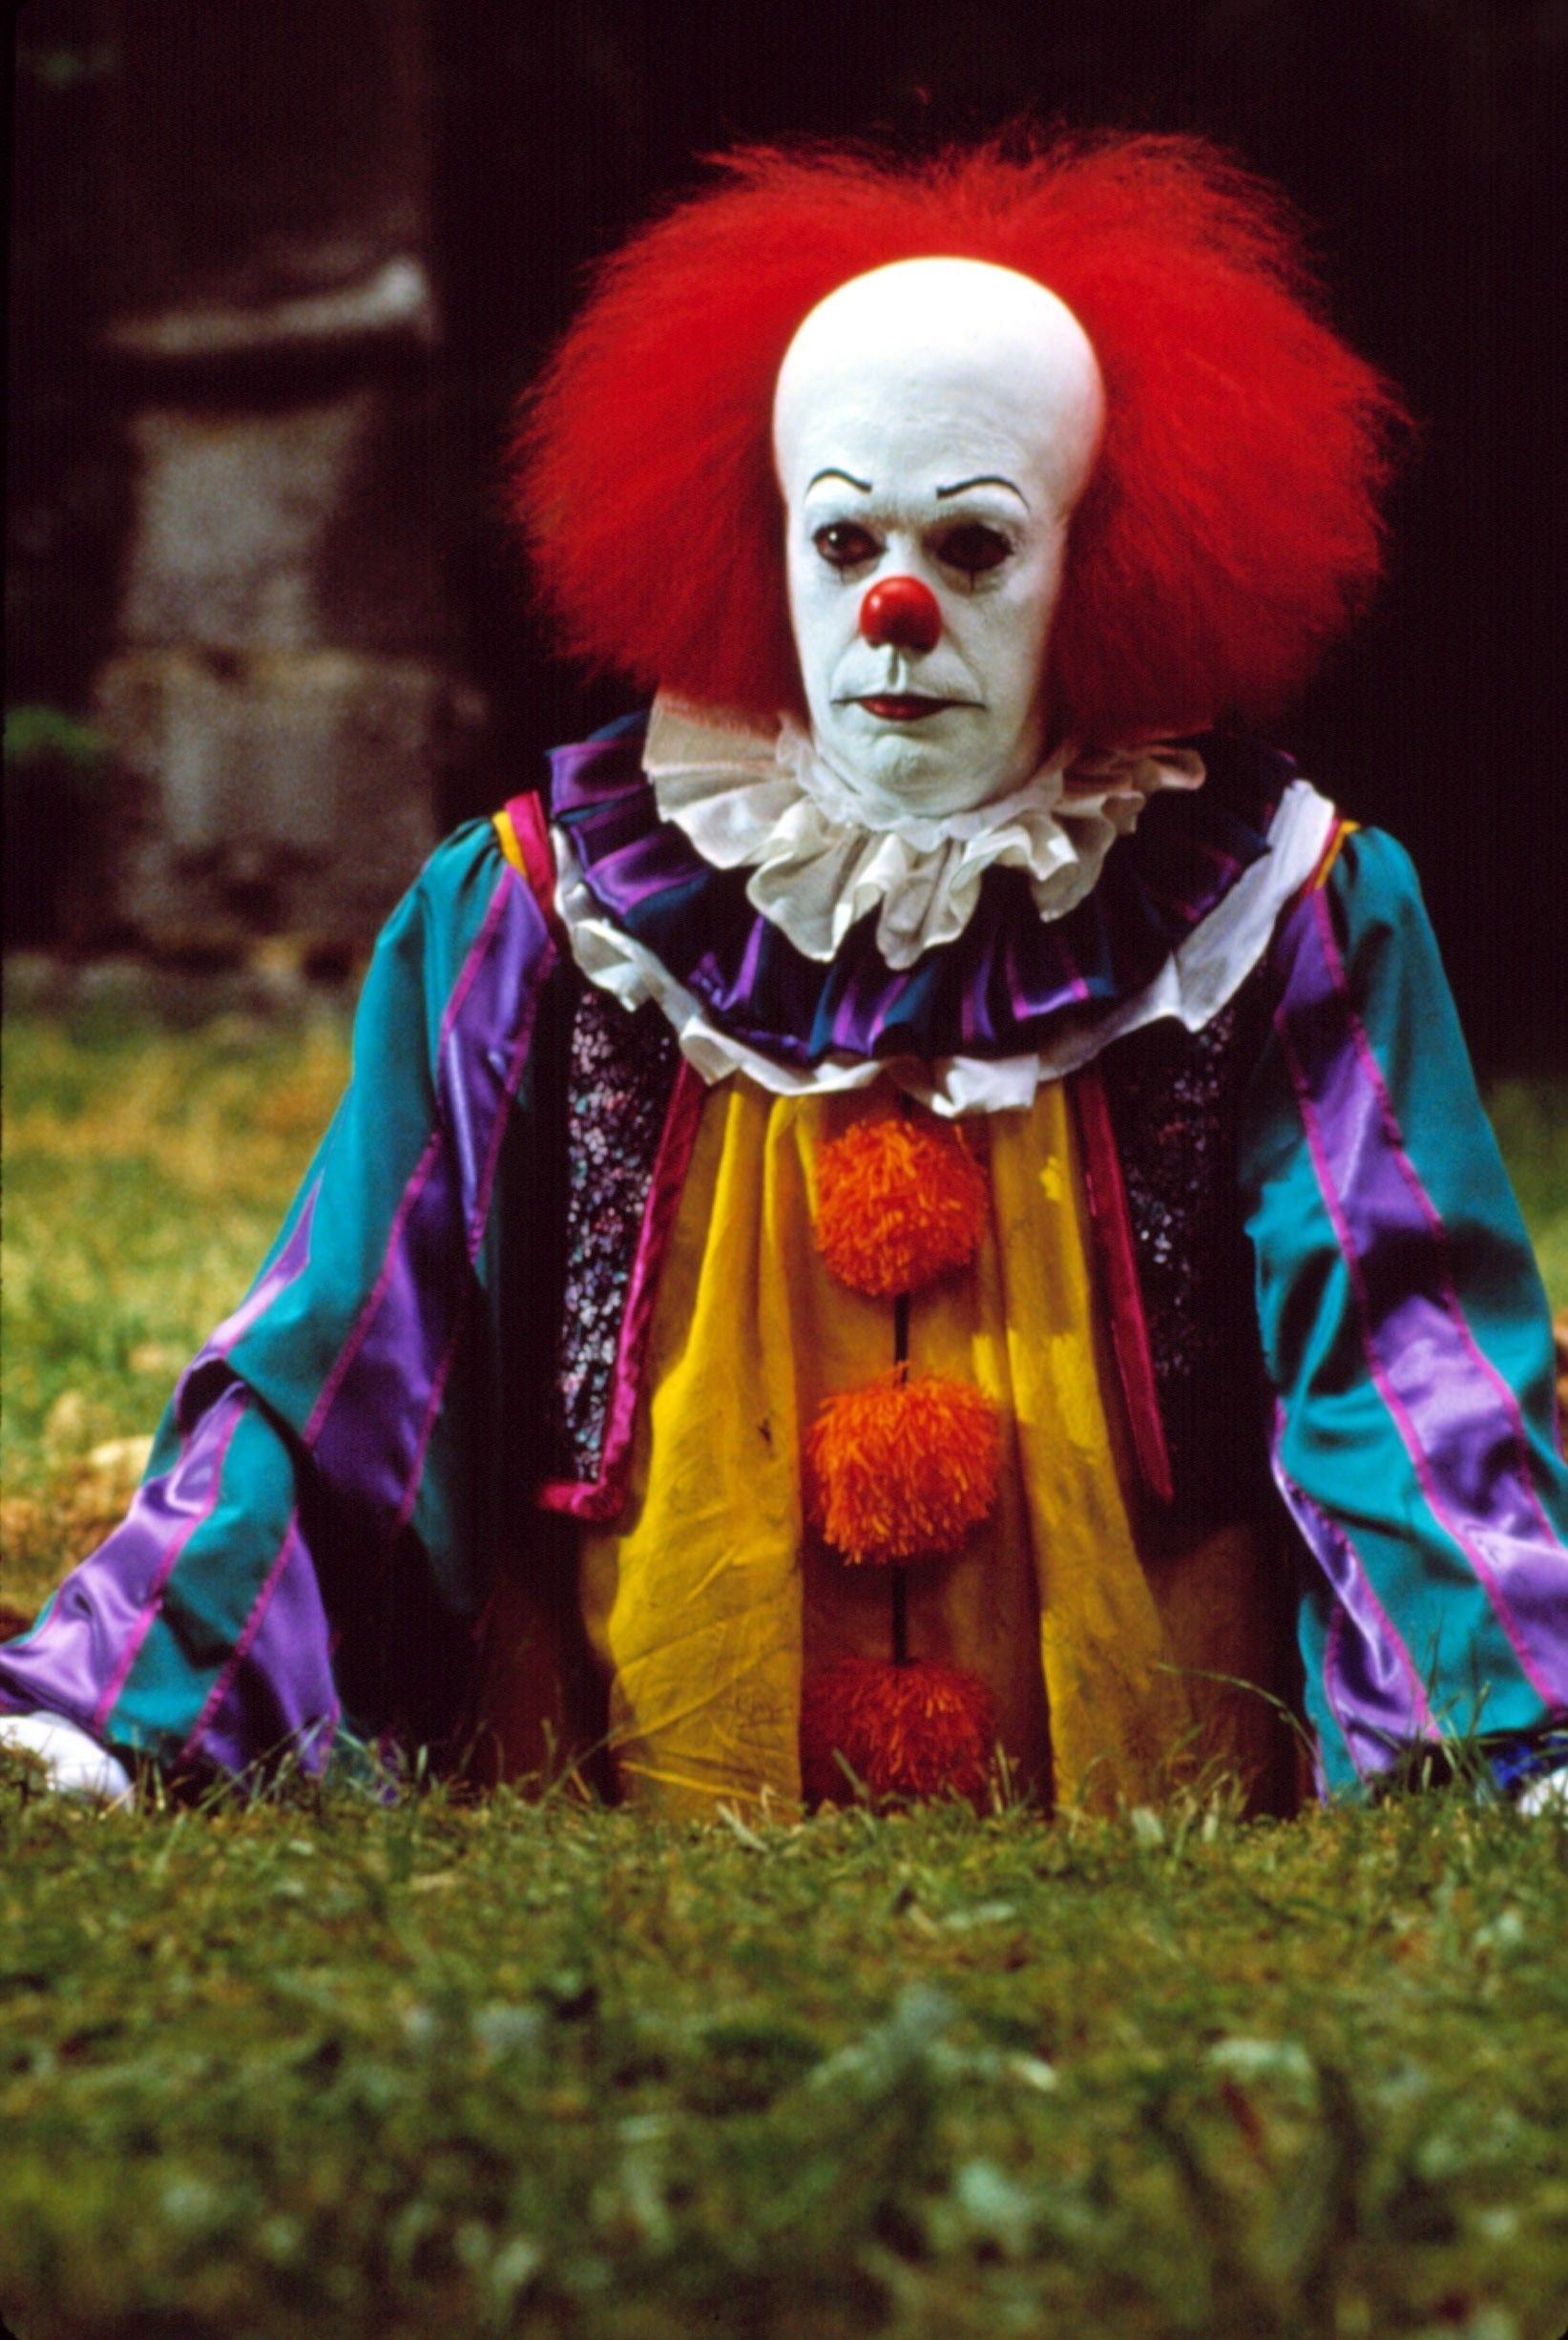 pennywise the clown from it played by tim curry